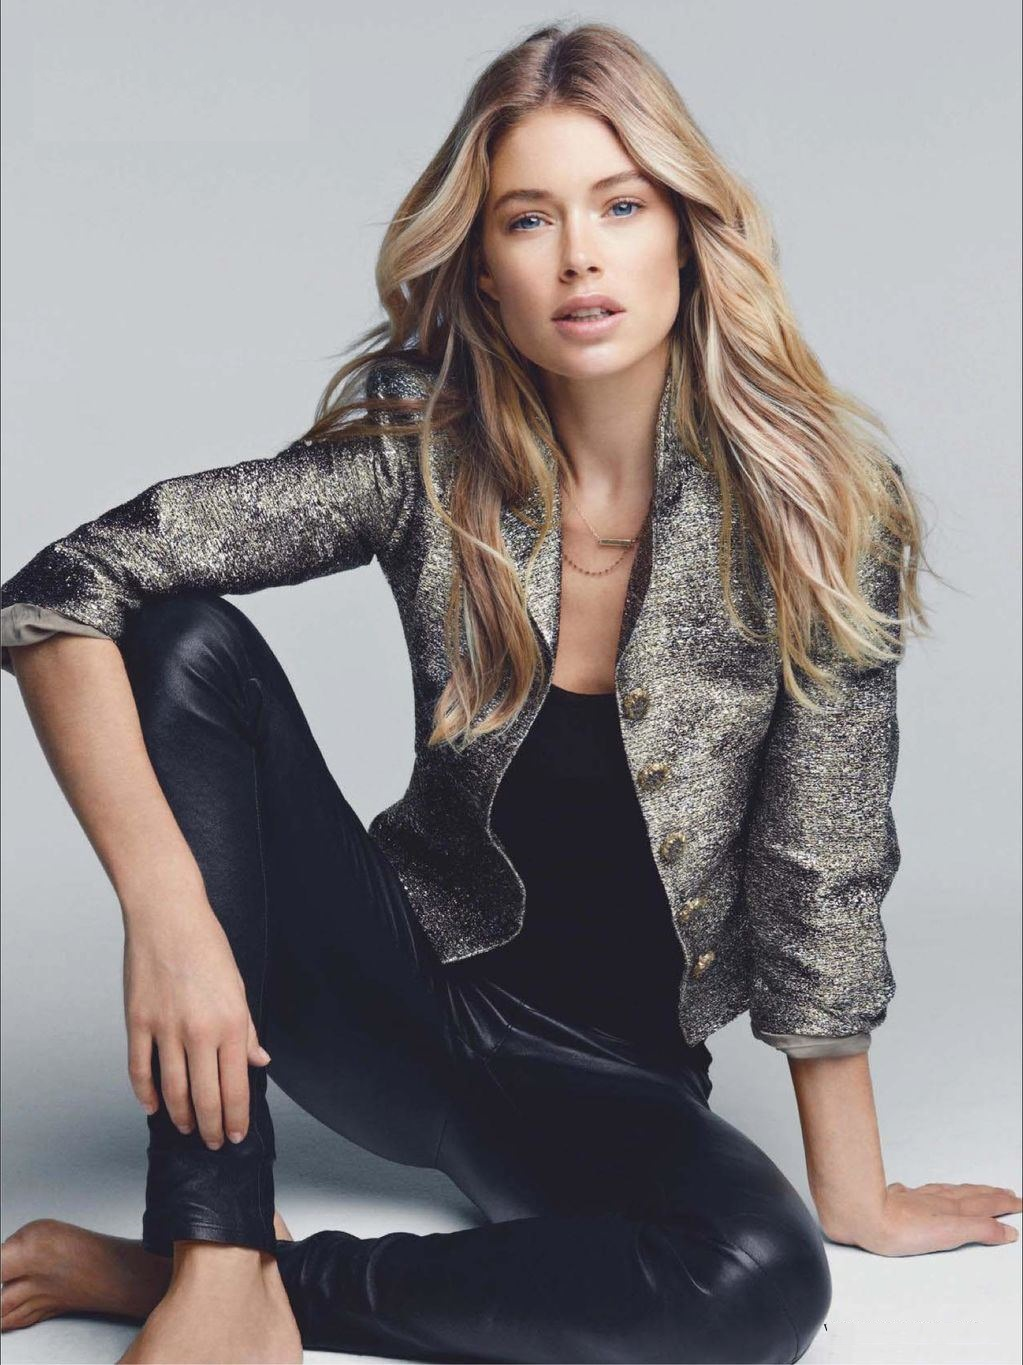 Vogue-Netherlands-December-doutzen-kroes-33263350-1023-1365